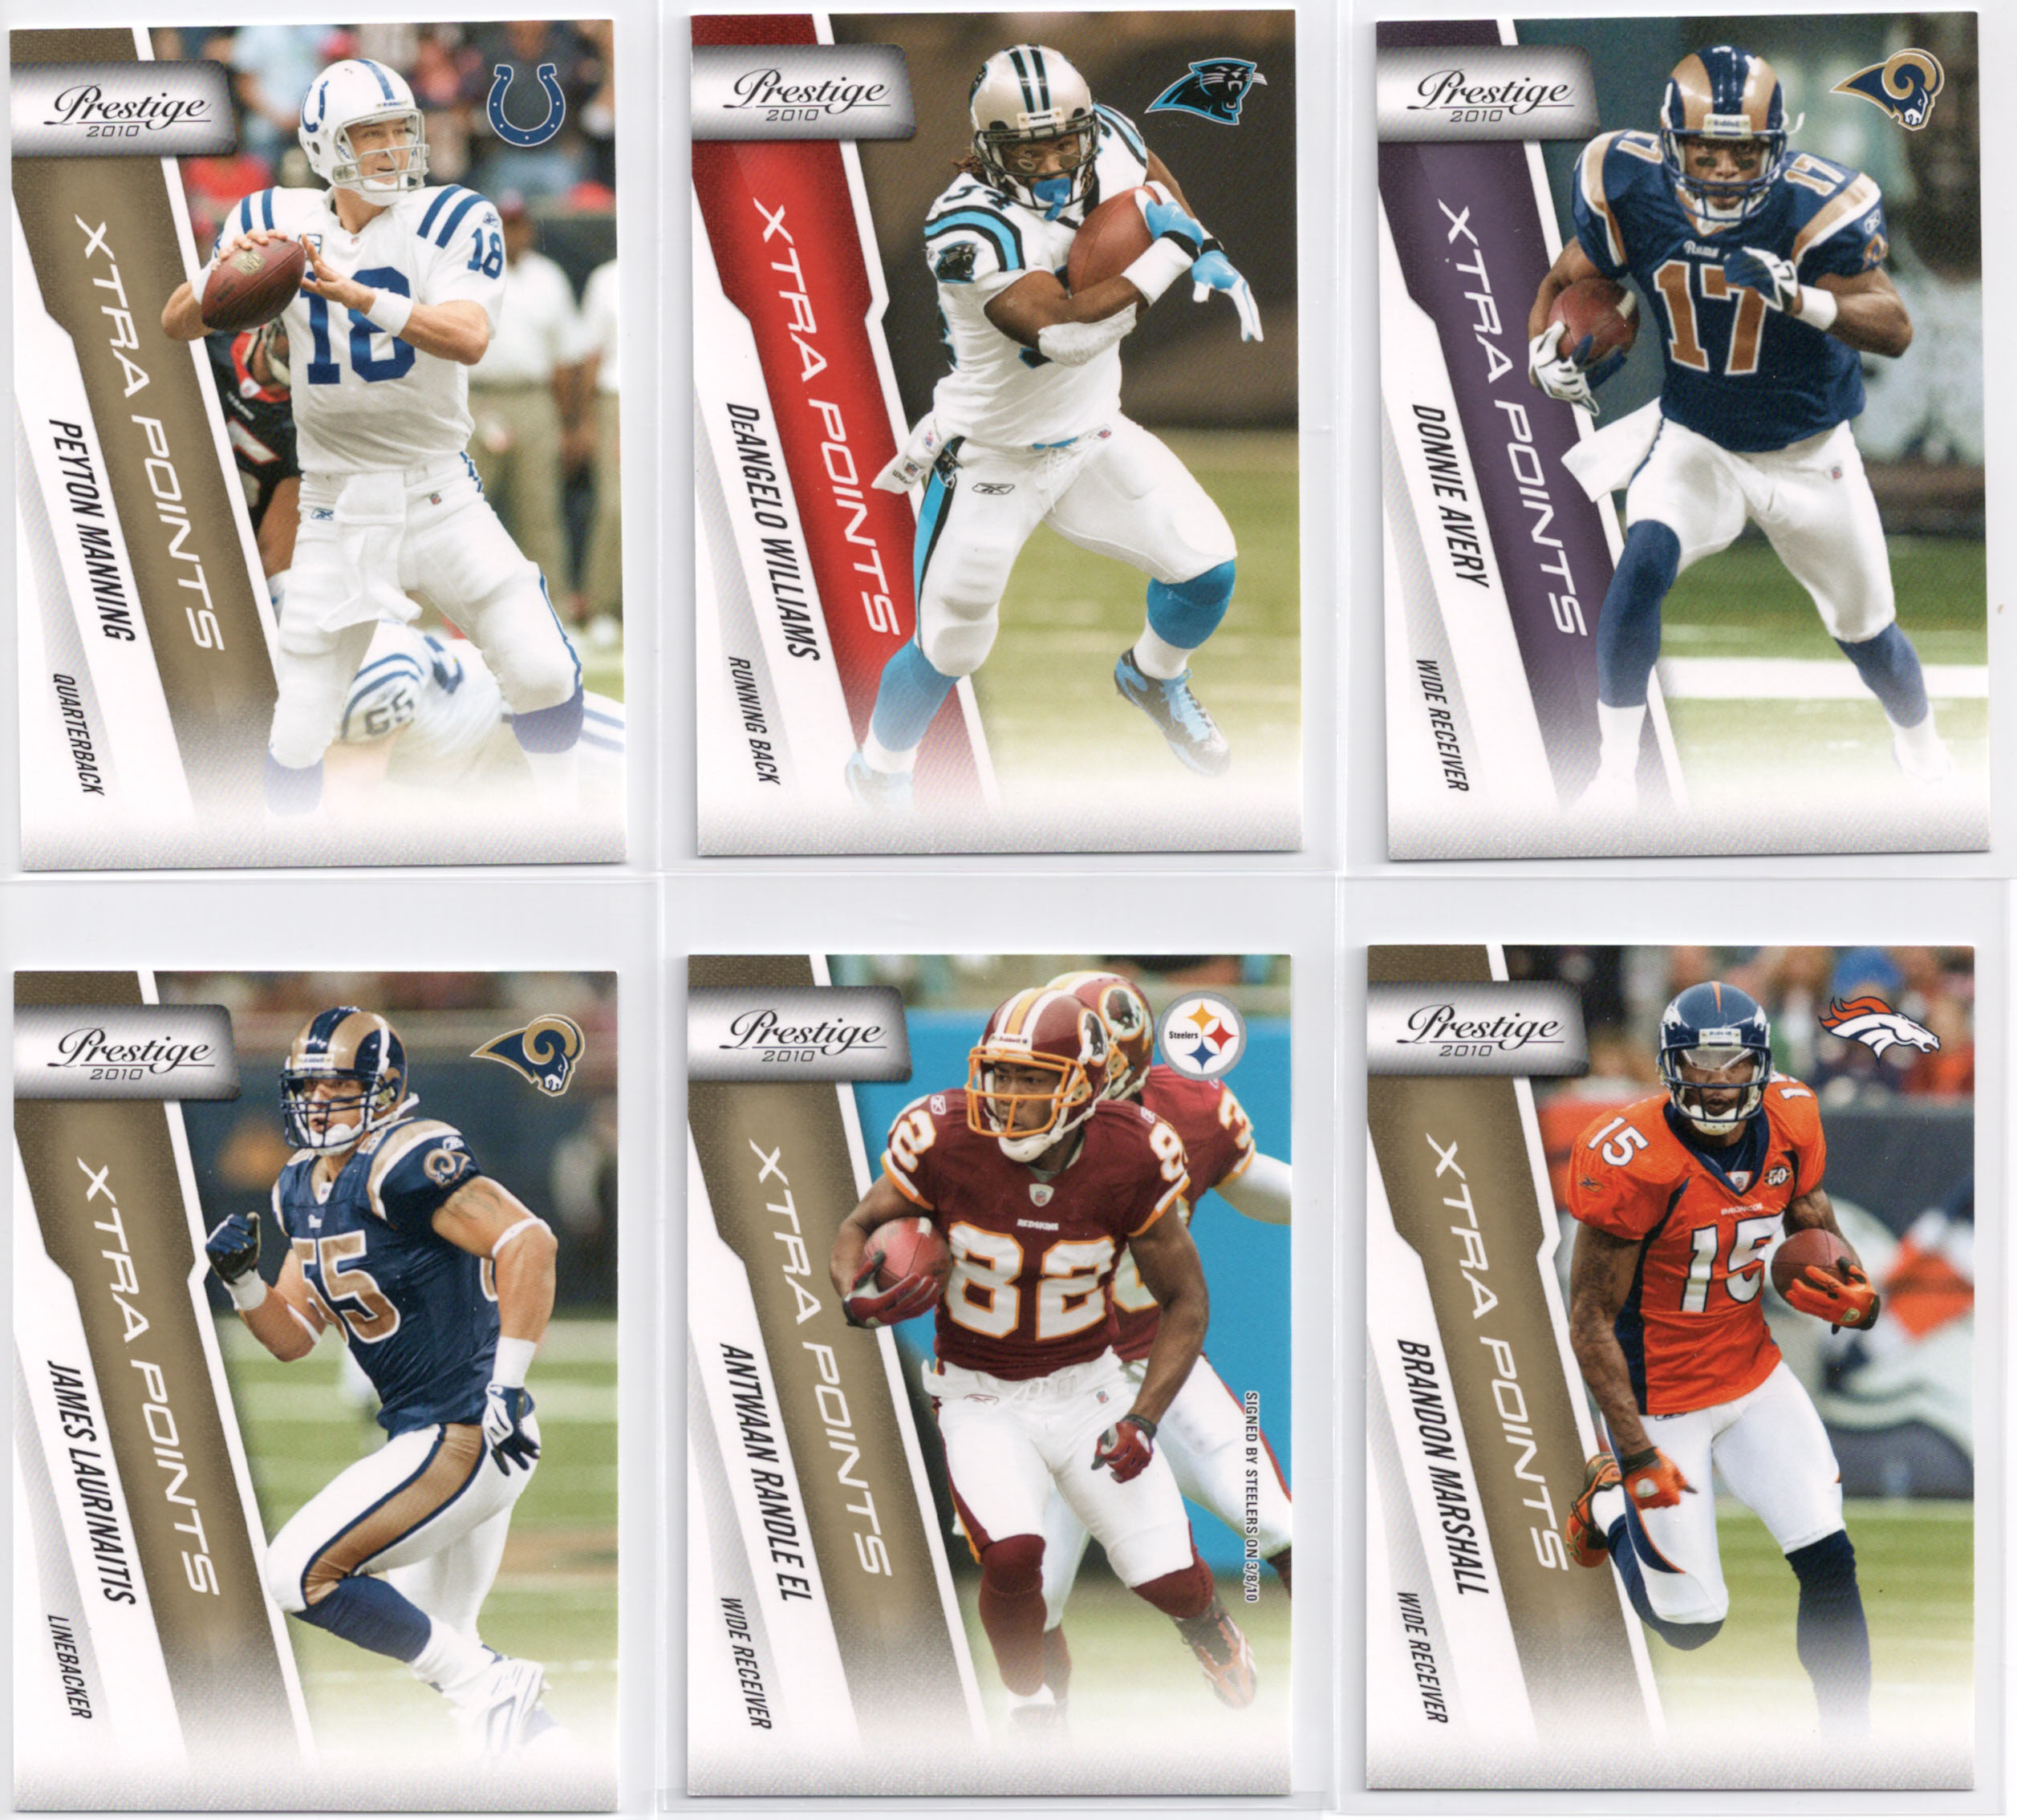 2010 Panini Prestige Football Cards 18